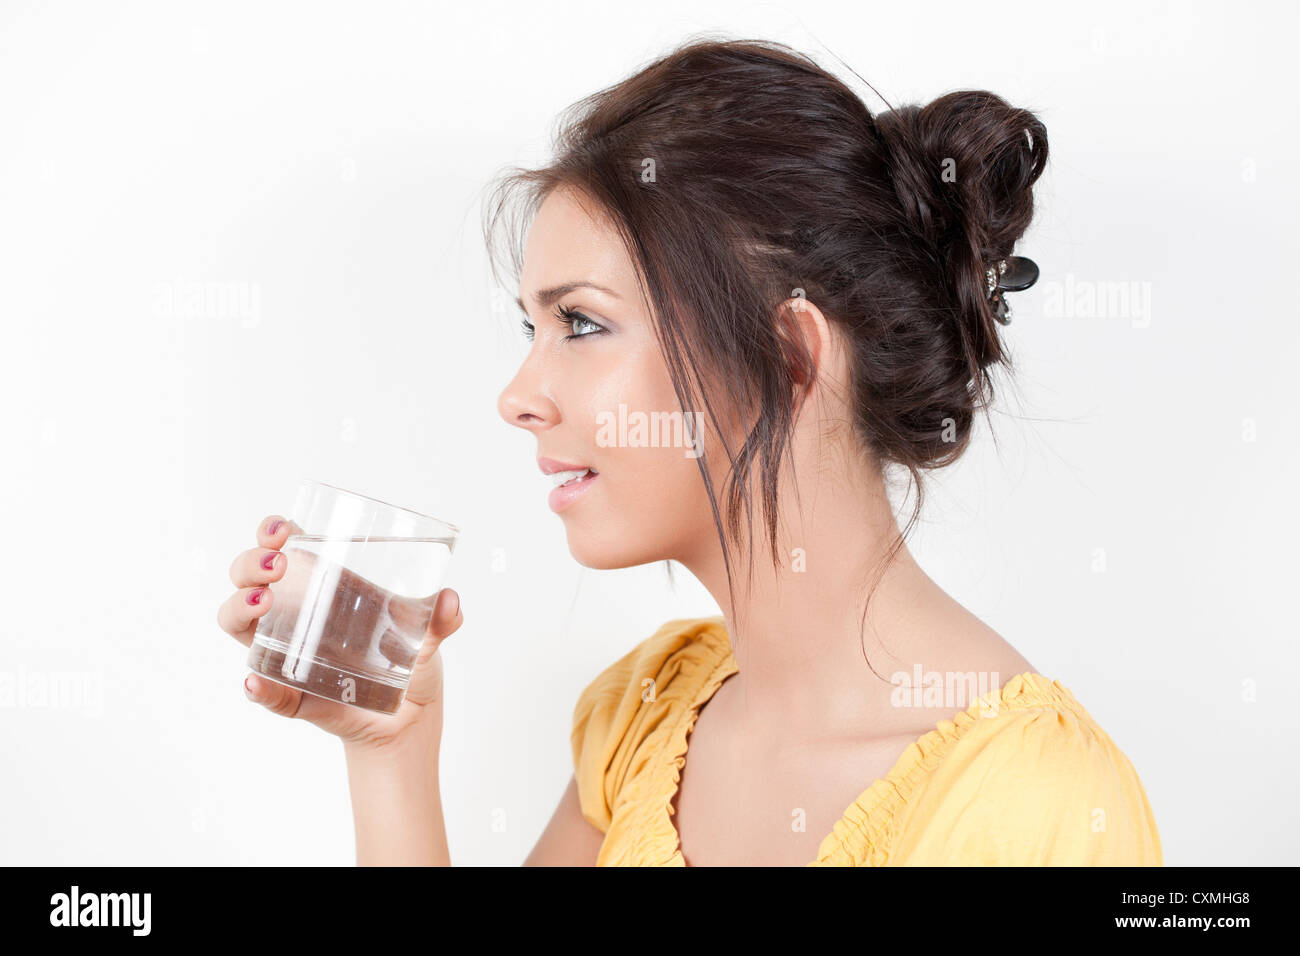 Woman drinking water from a glass Stock Photo